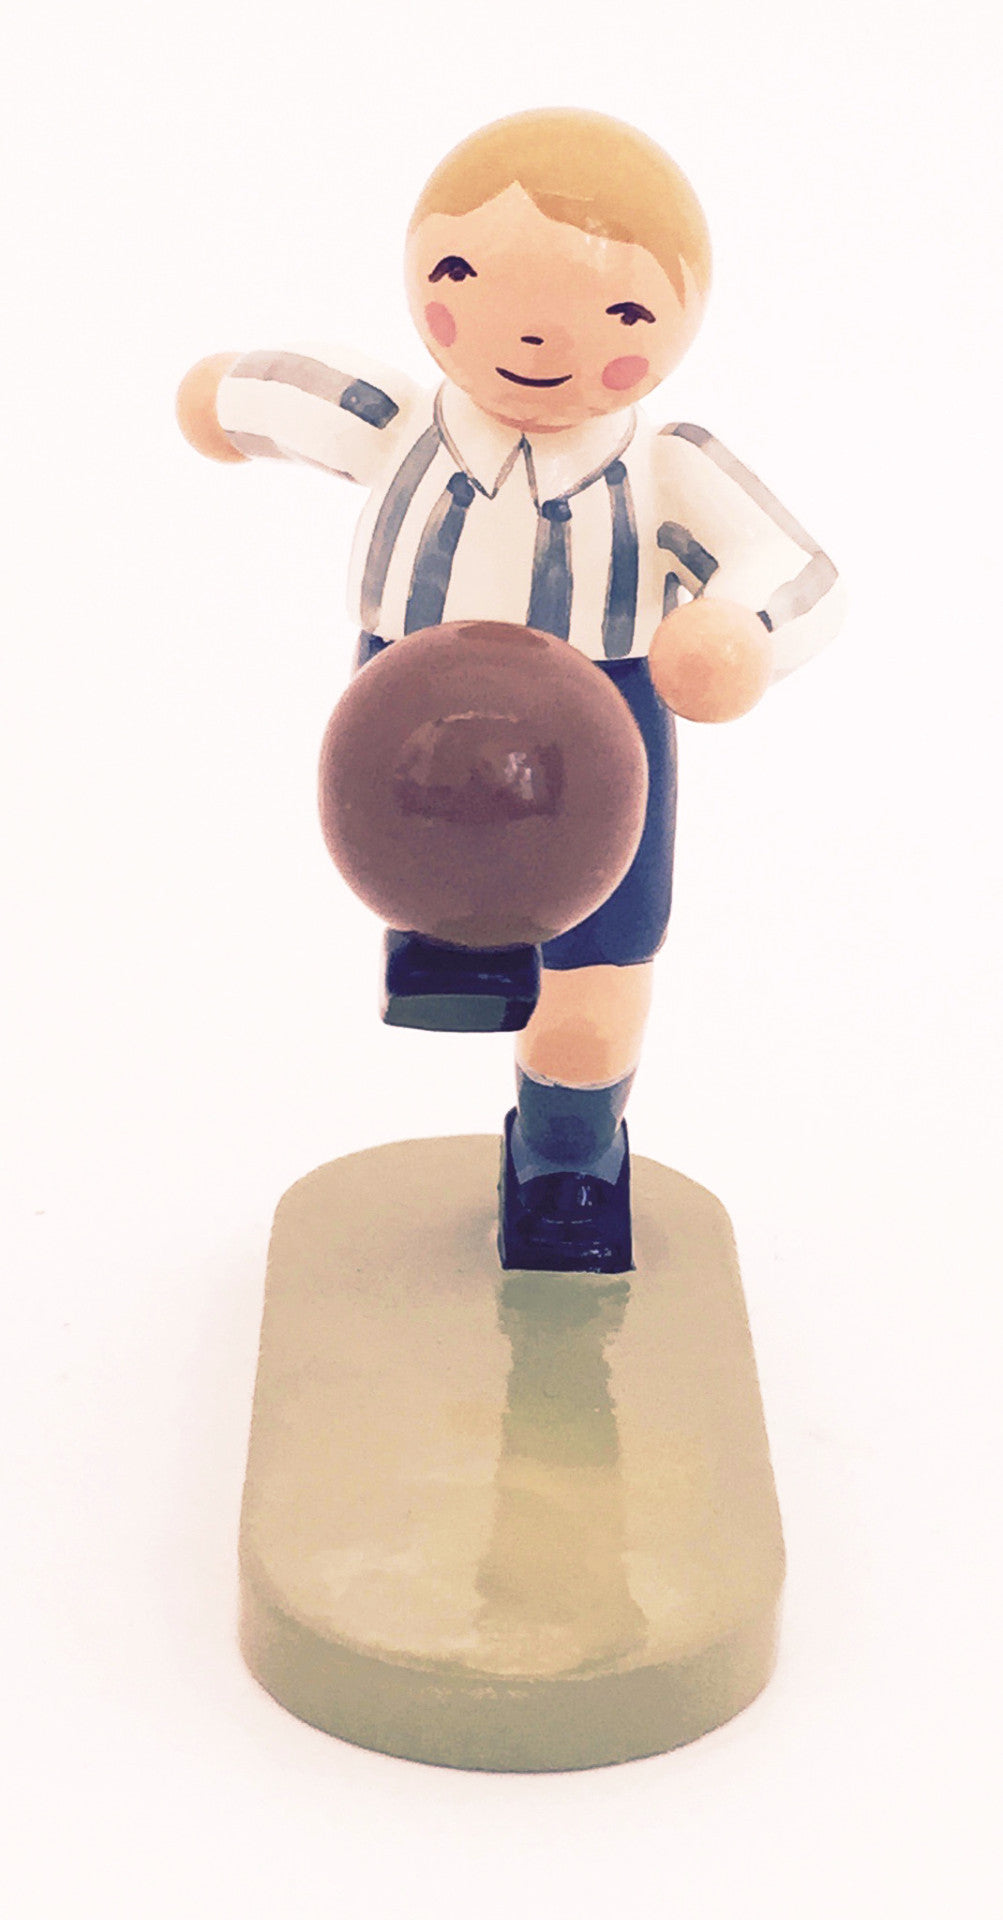 Soccer Player - Blue-Striped Shirt - Exclusive for 2006